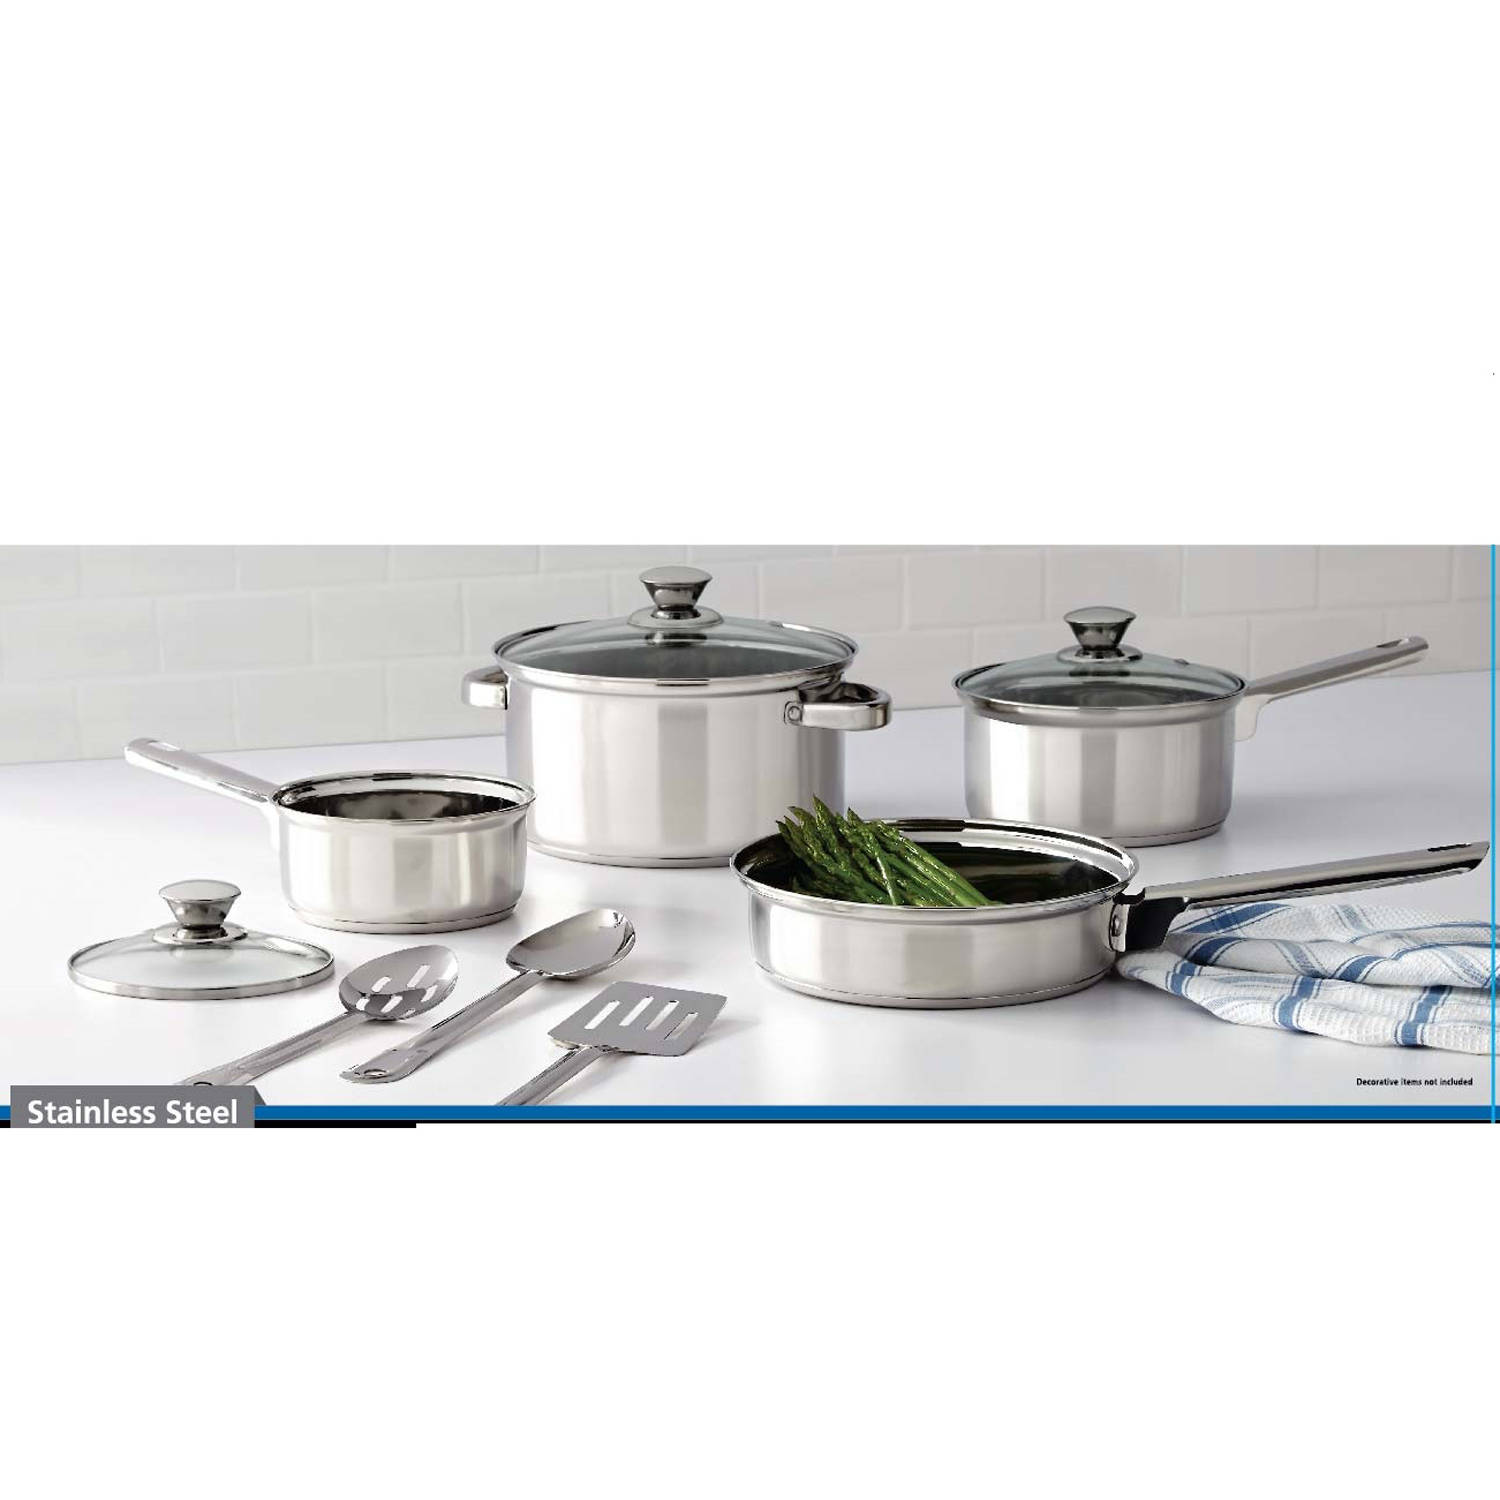 Mainstays 10-Piece Stainless Steel Cookware Set